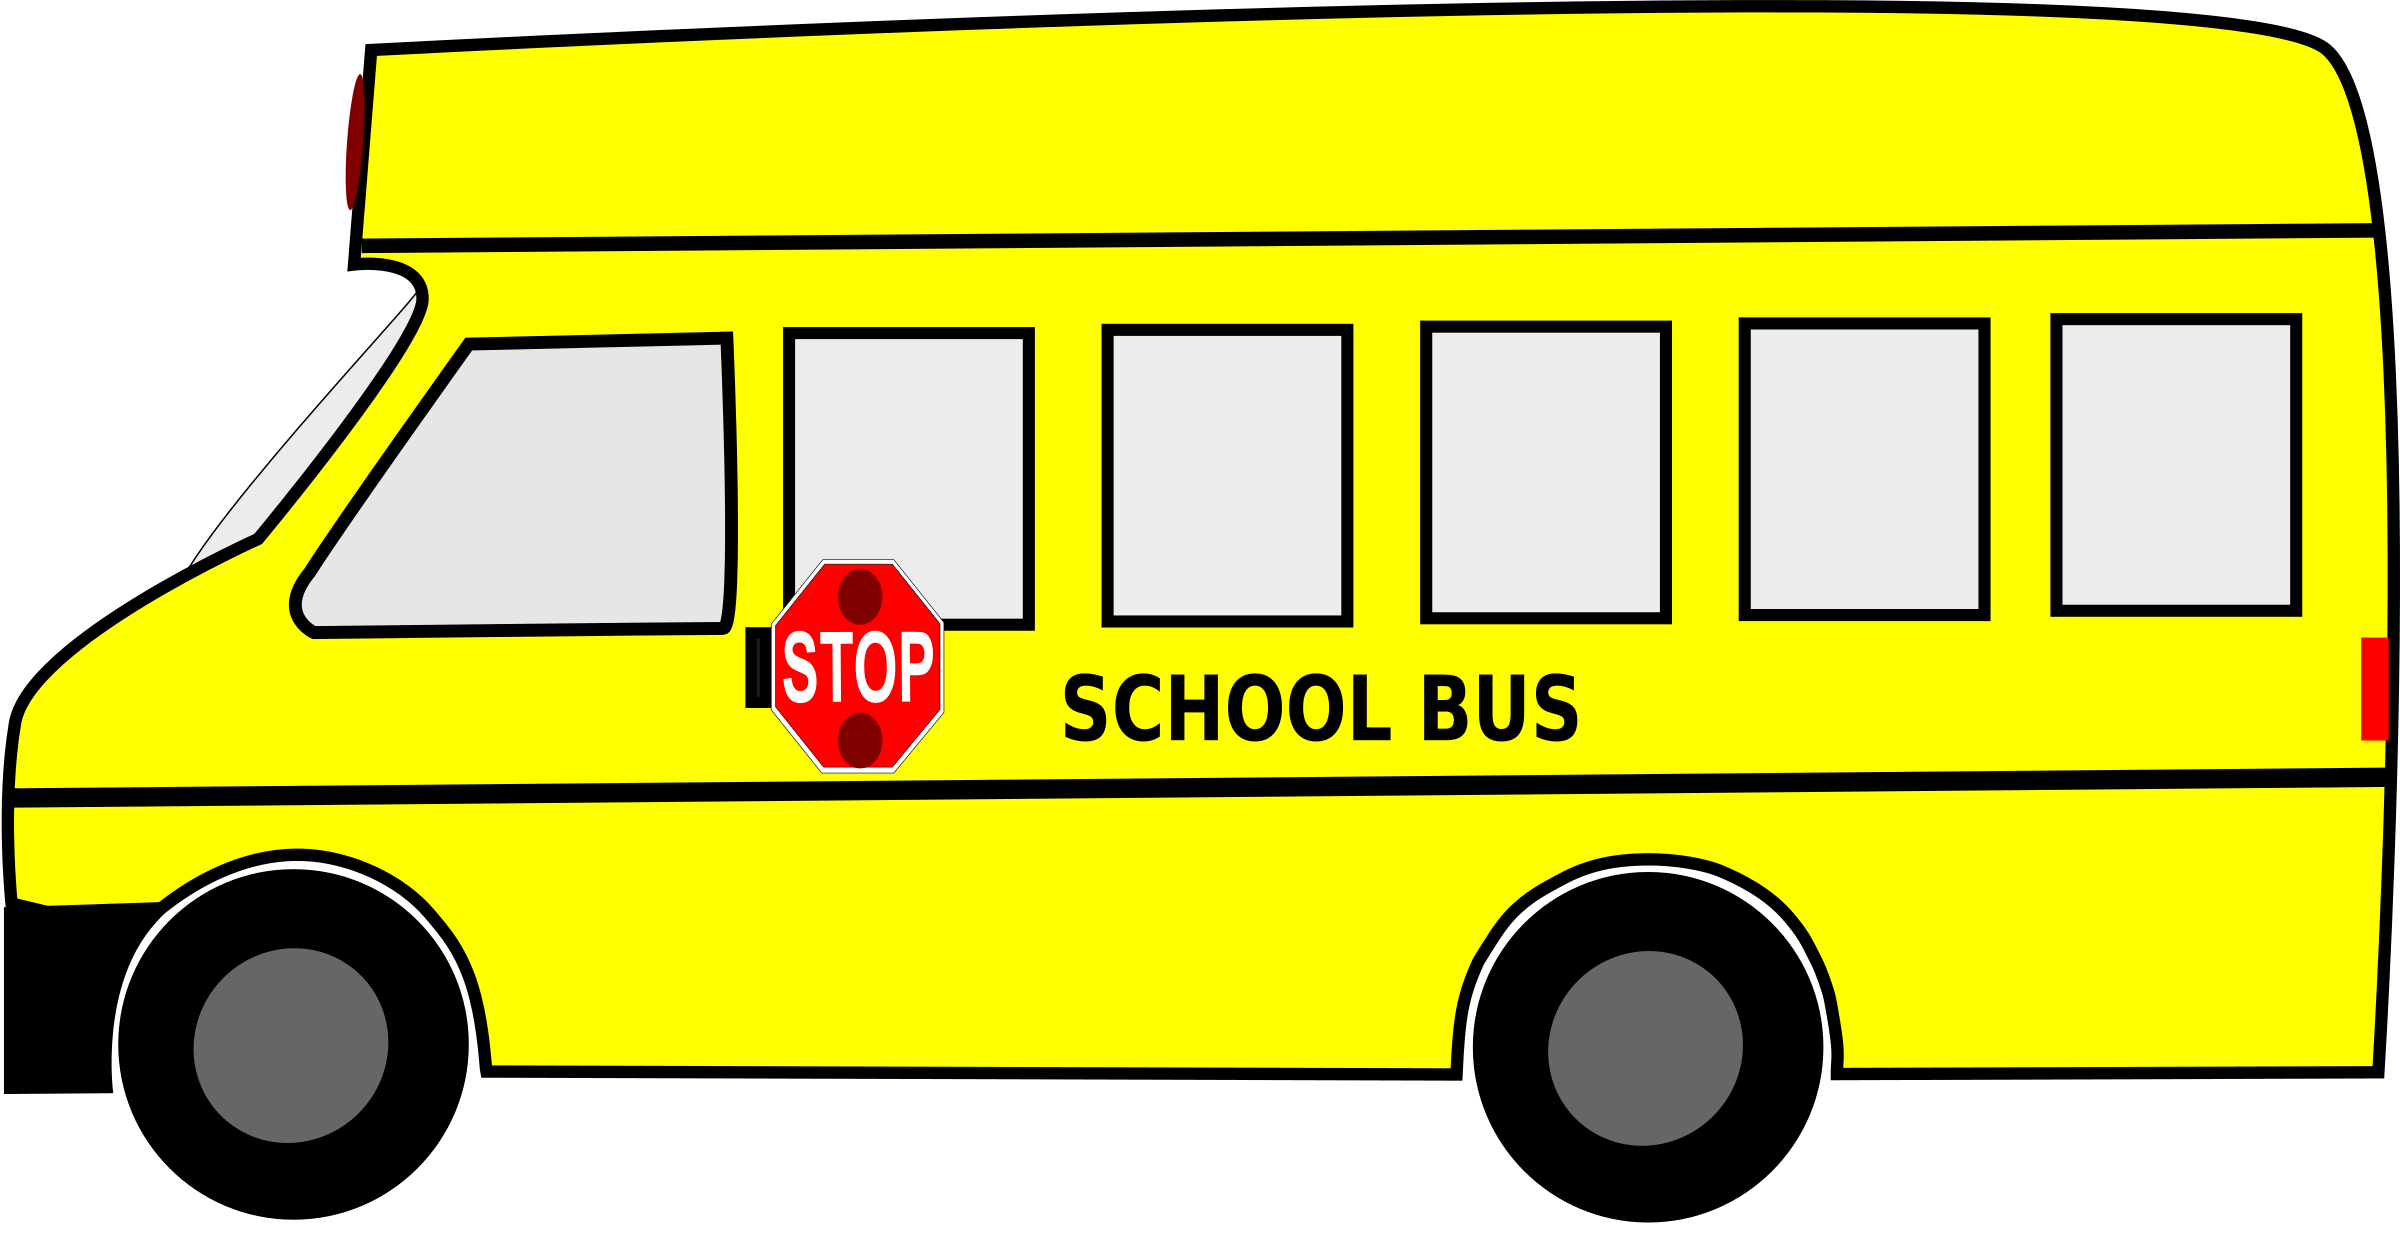 Clipart - Moving School Bus Animated SVG Clipart Free Download